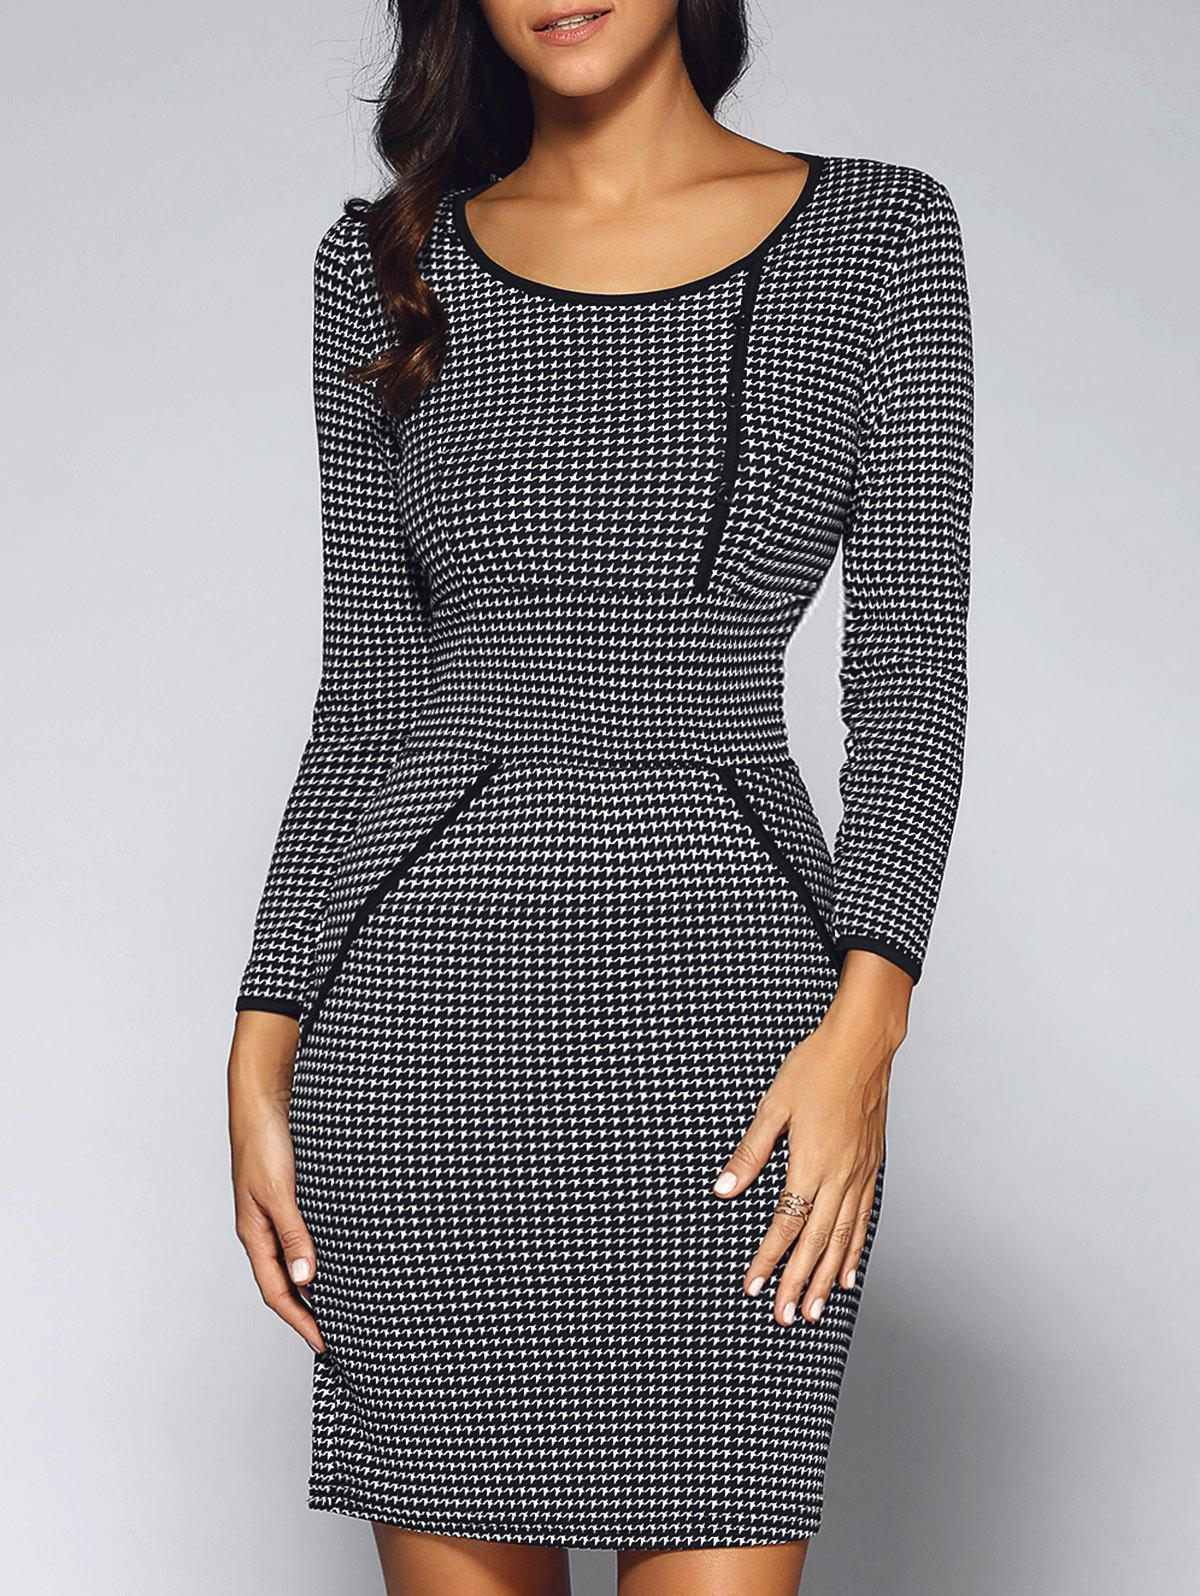 Buttons Houndstooth Print Pencil Dress - Black M